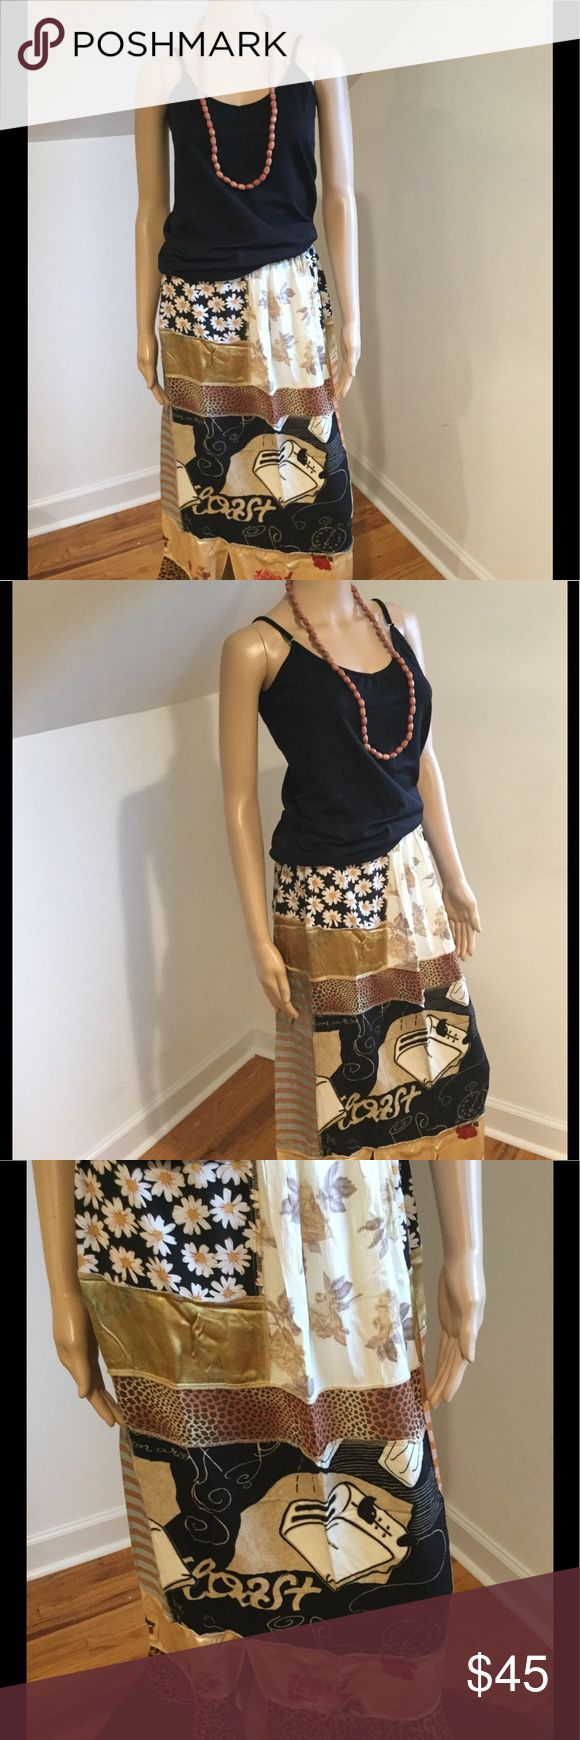 Toast Skirt Totally eclectic toast skirt with toaster and other fun items within the funky black & brown pattern. Pre loved & in new condition. Nothing Matches brand size 2. Be one of a kind in this fab find! No stains & from smoke free environment. Shirt & necklace sold separately. All sales final no returns or exchanges. Thanks for shopping Style Solutions! Nothing Matches Skirts A-Line or Full